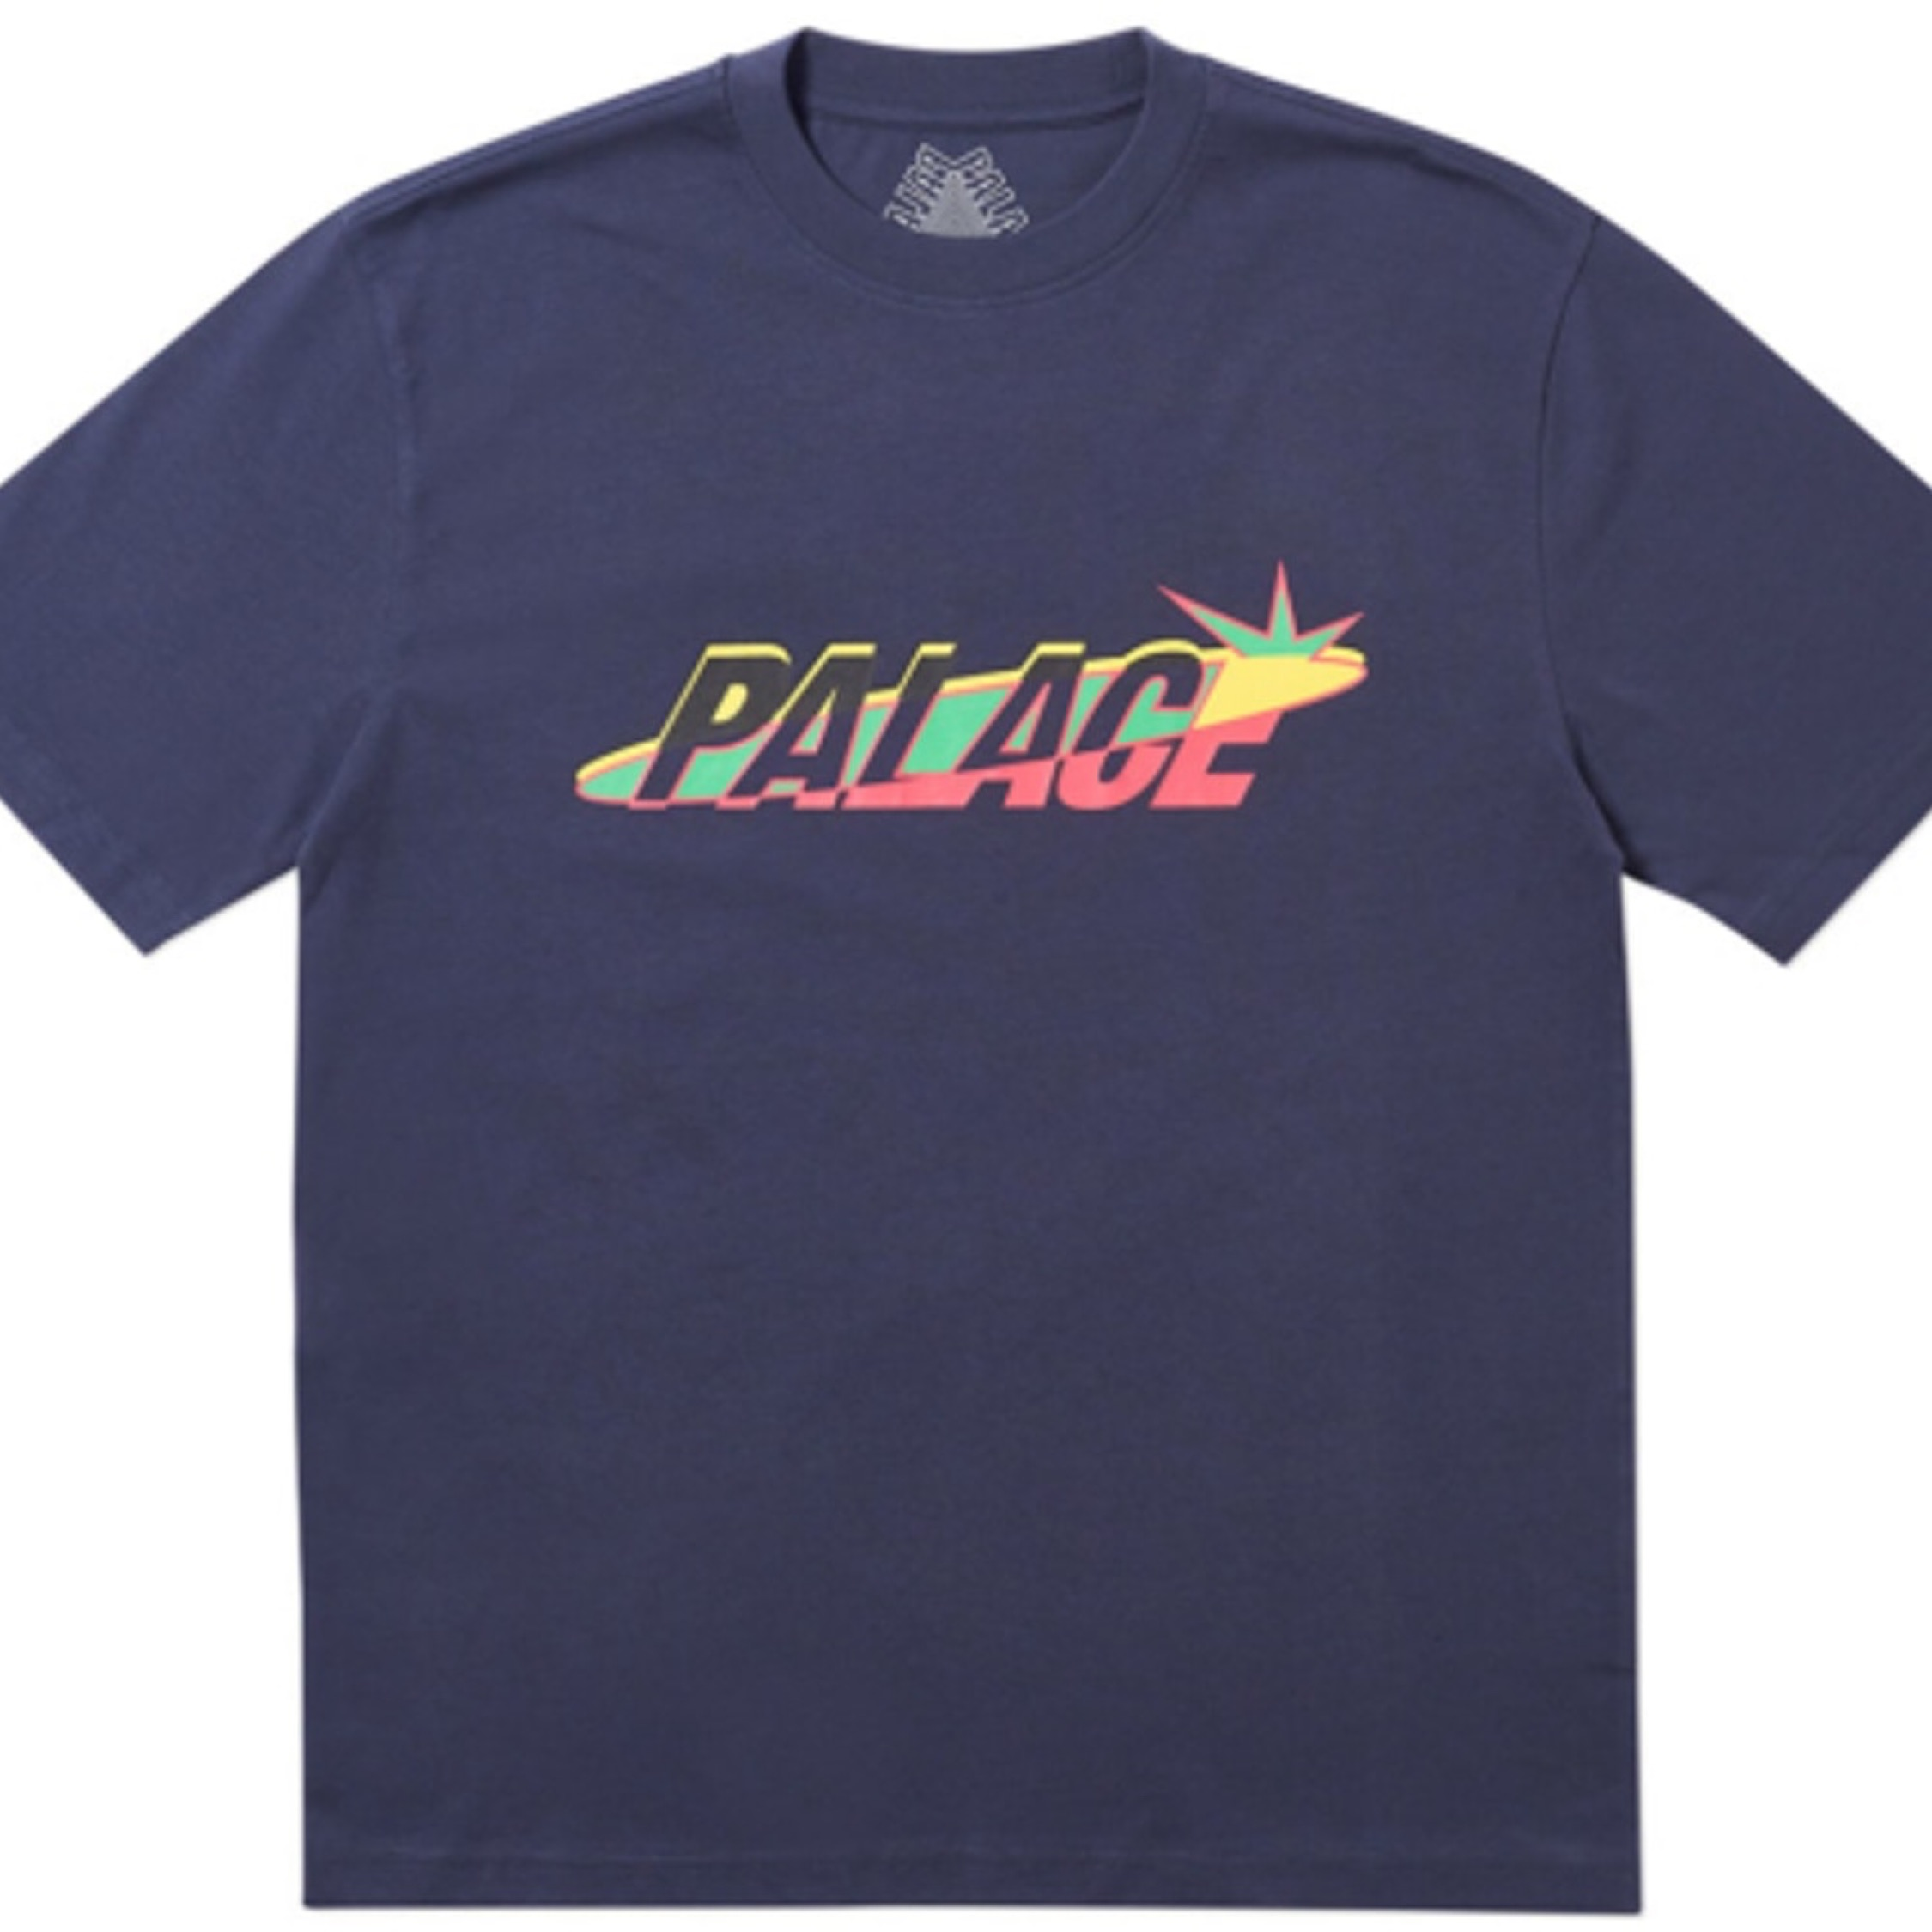 Palace Lique T-Shirt In Navy Blue